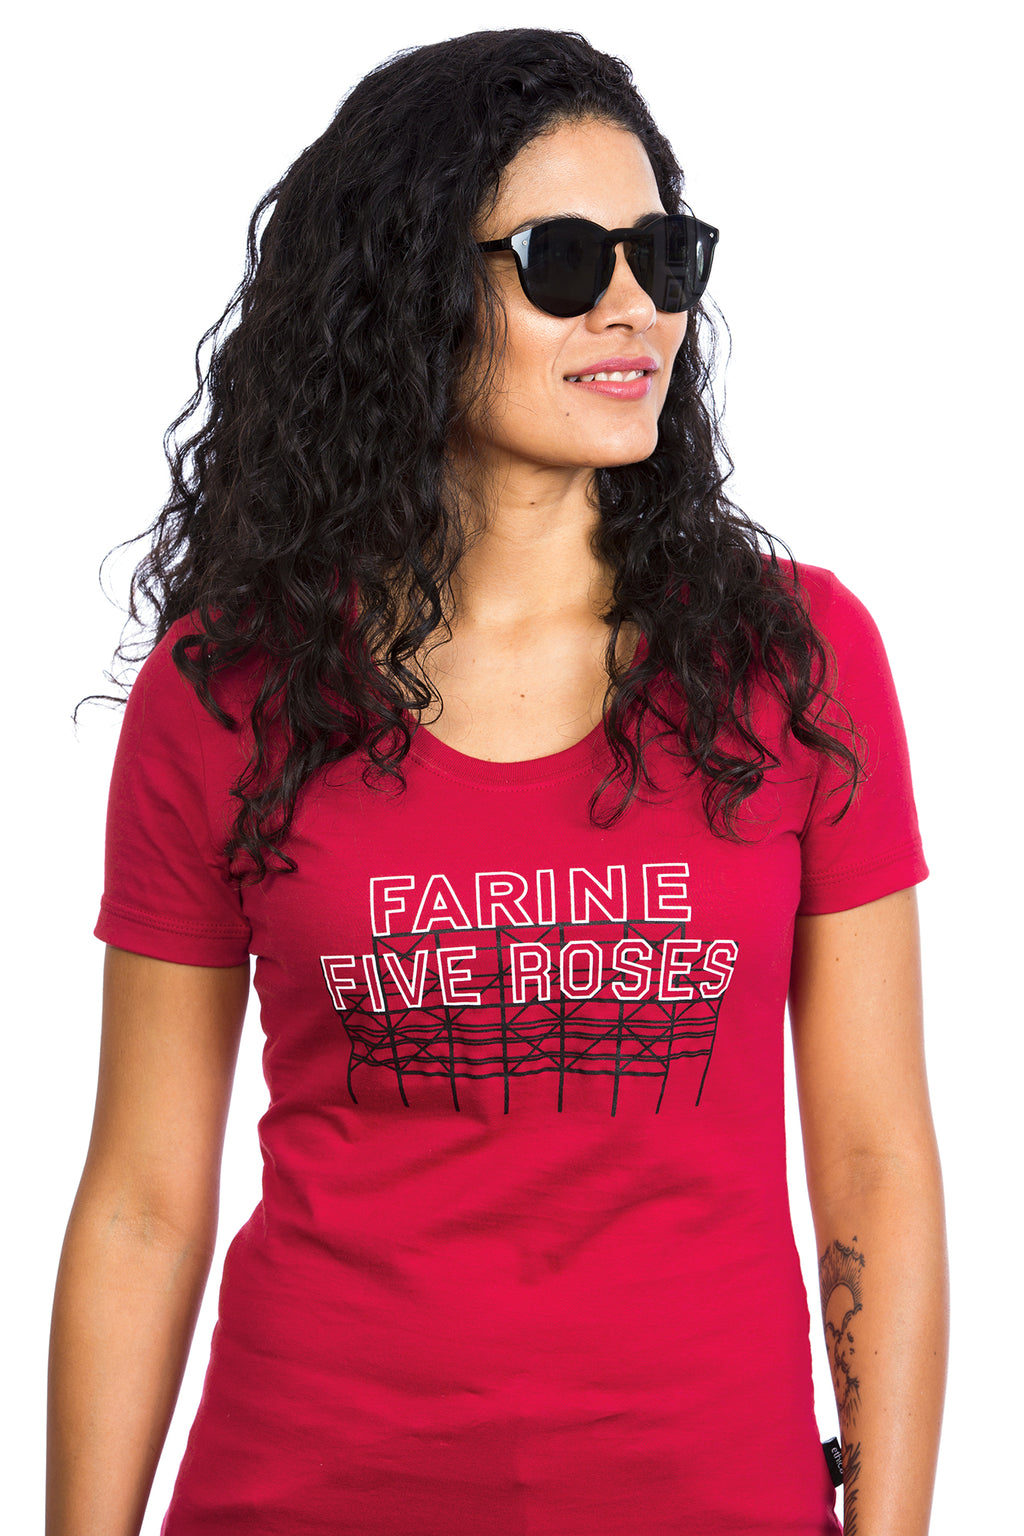 Women's Farine Five Roses T‑shirt - Organic cotton